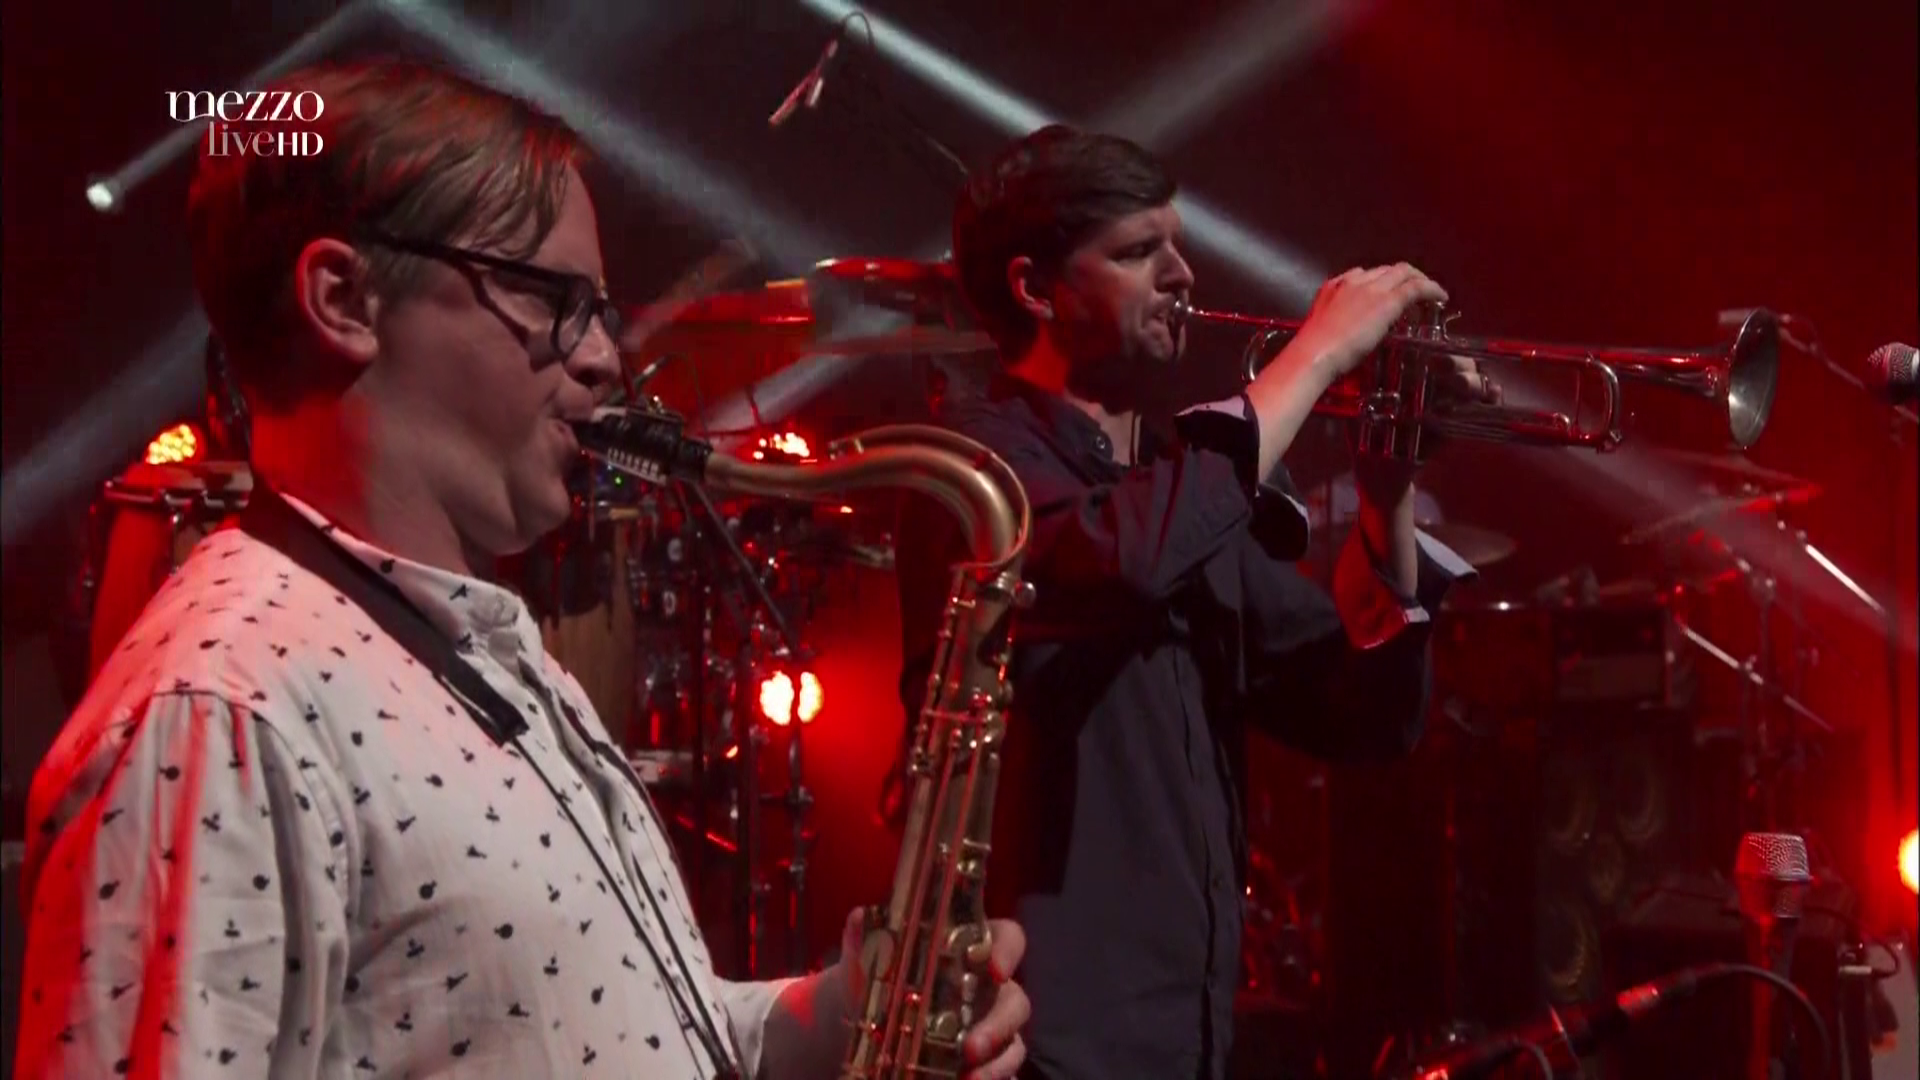 2017 Snarky Puppy - Live In Paris [HDTV 1080i] 4